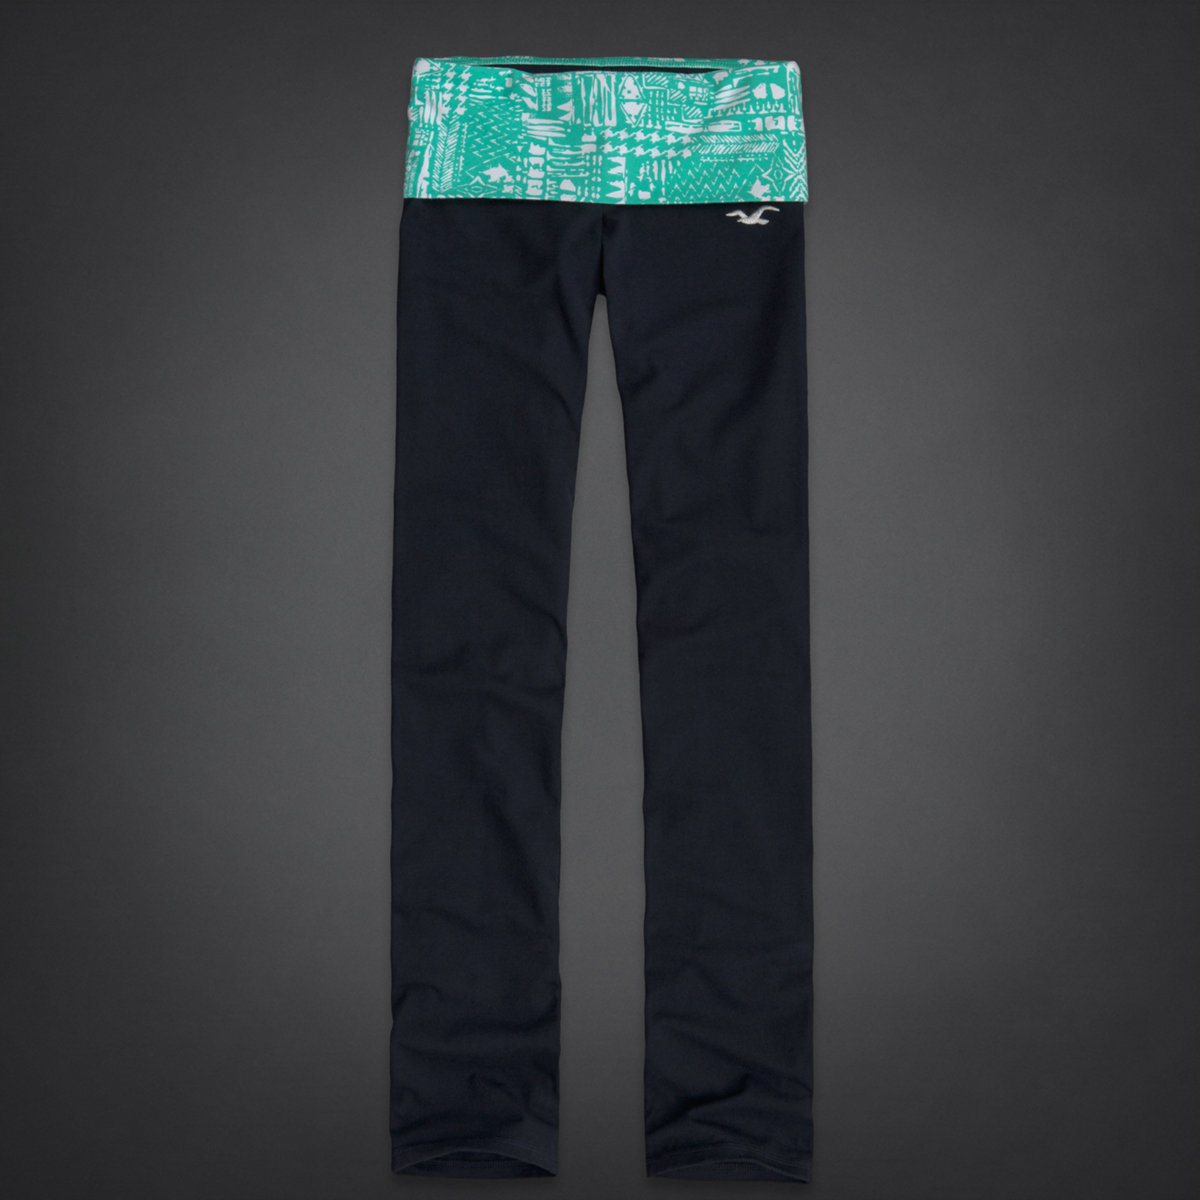 Hollister Classic Yoga Pants From Hollister Co.